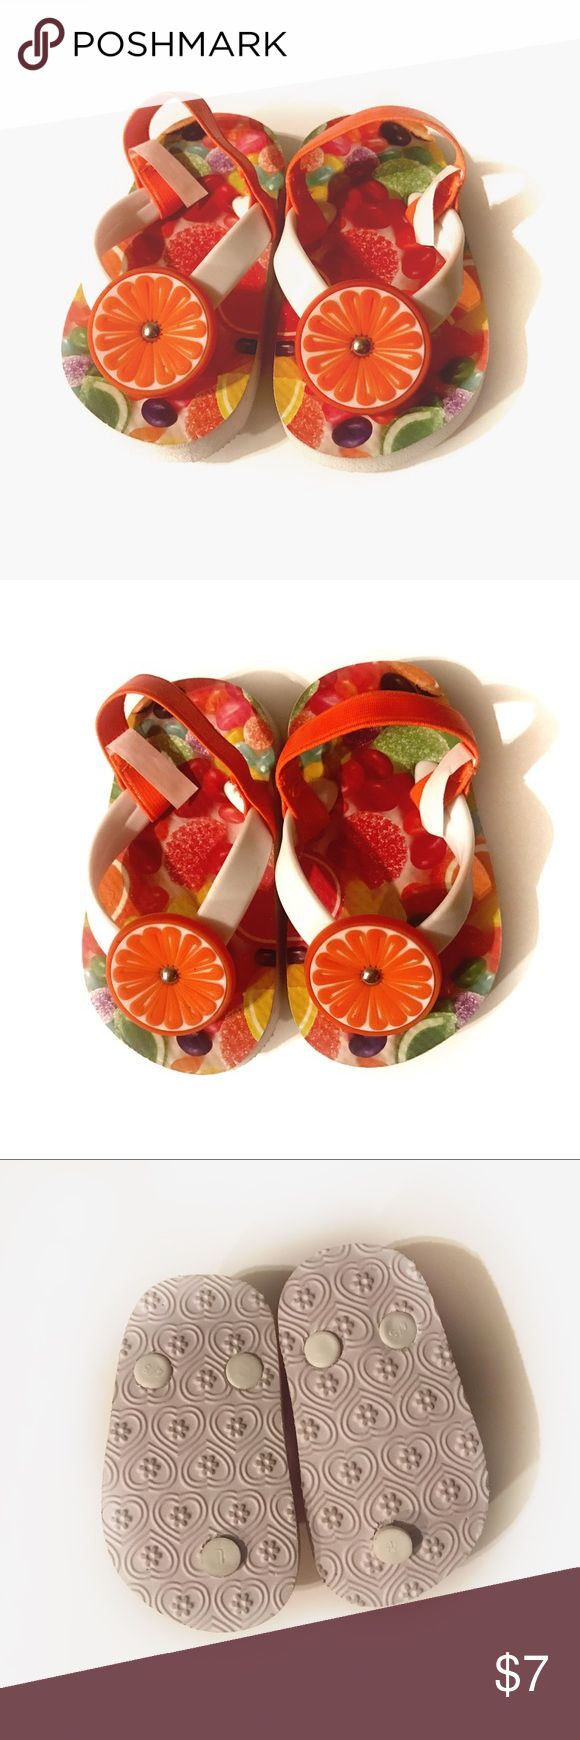 Orange Jelly Bean Sandals Orange jelly bean sandals size 4/5 in excellent condition, worn once. Fits better for a size 4. Shoes Sandals & Flip Flops